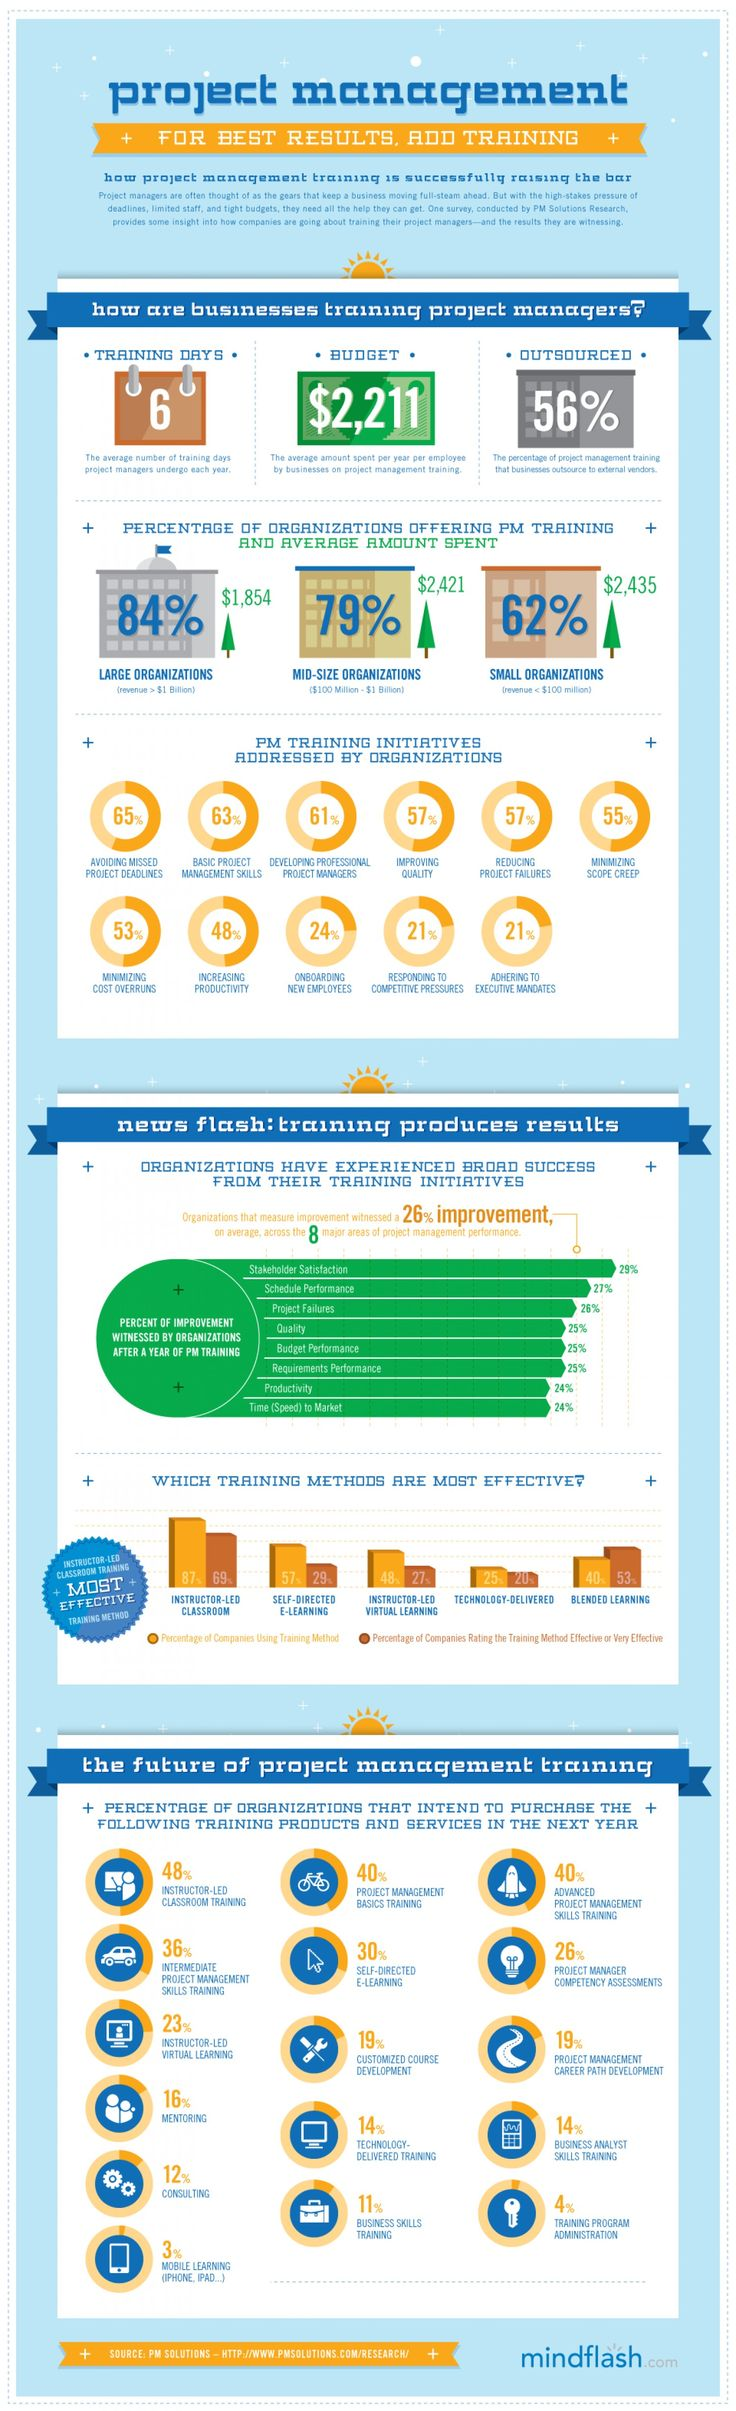 Training of project managers... [infographic]